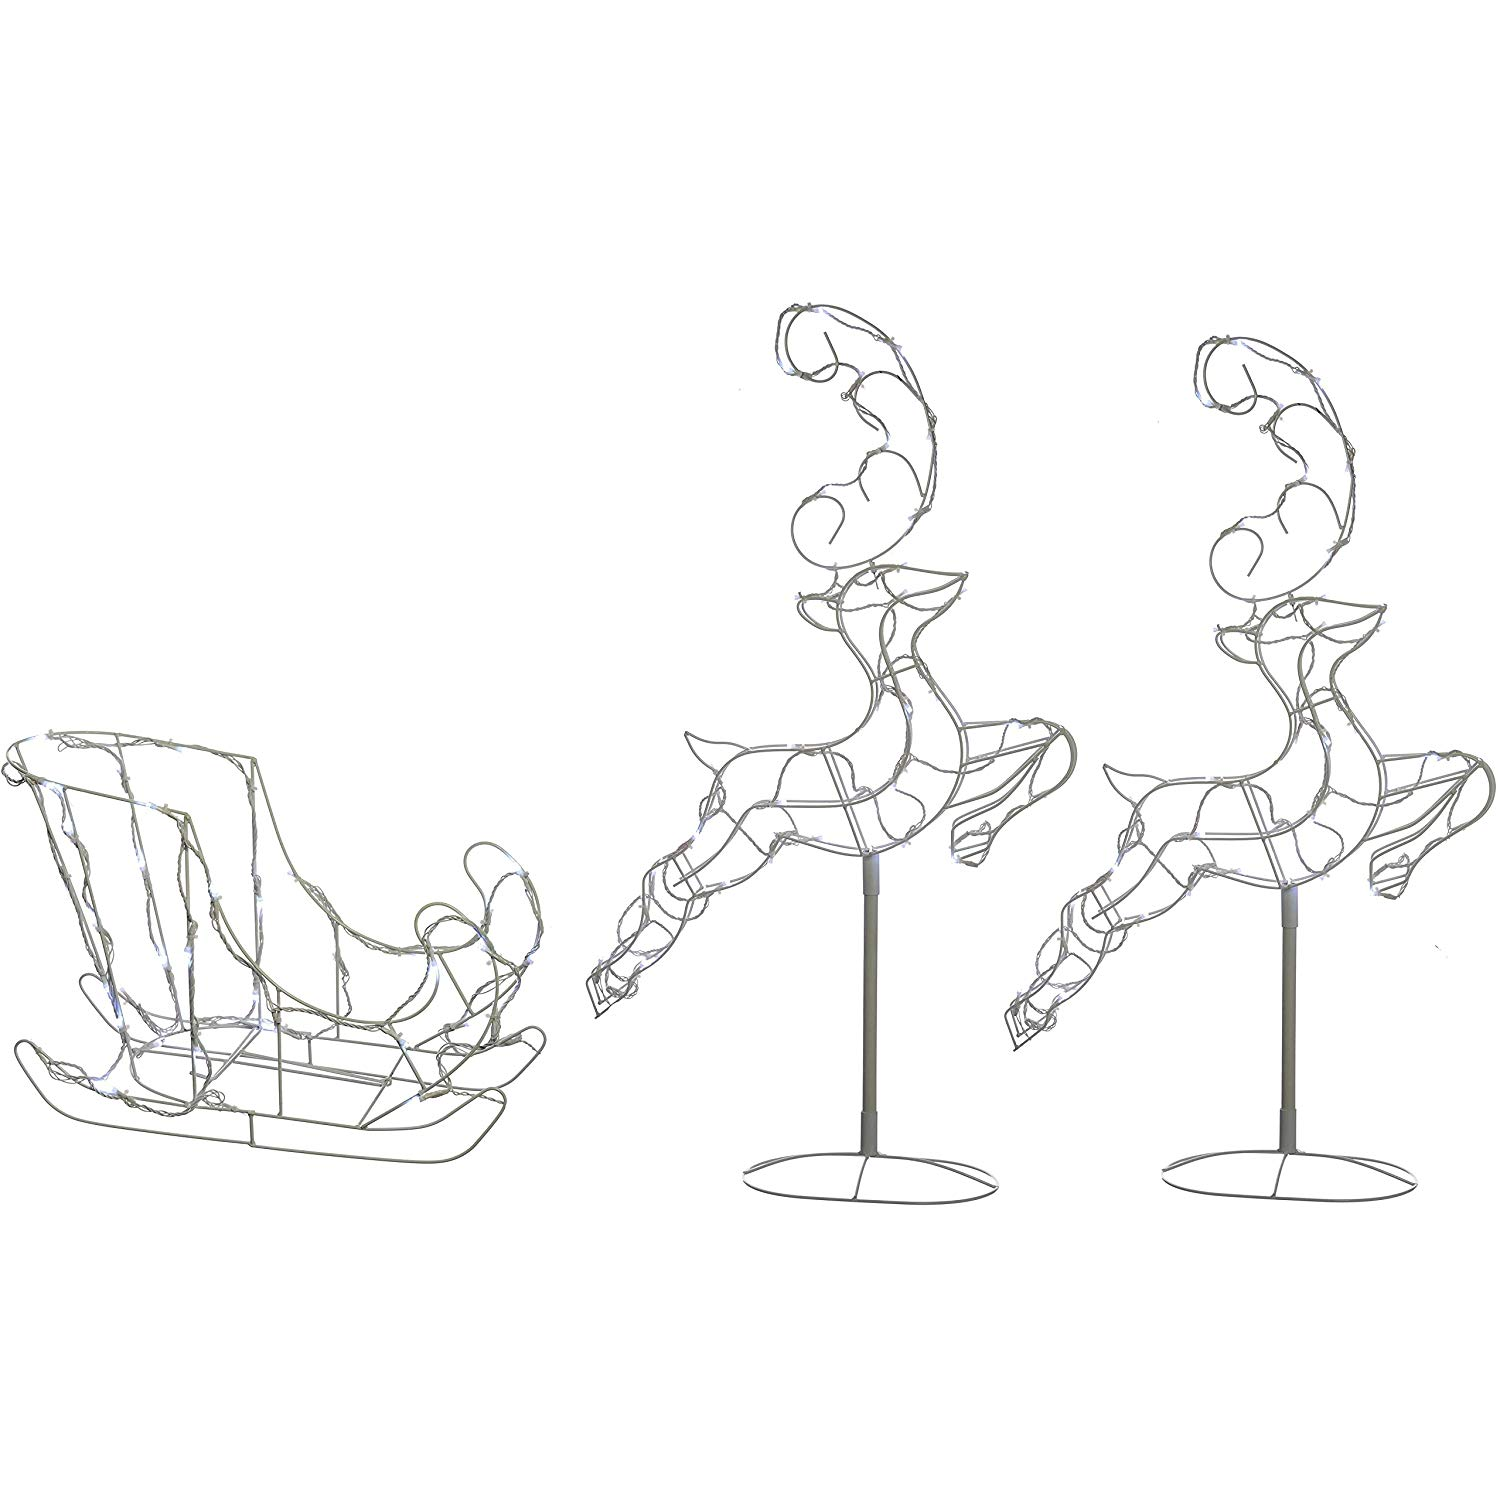 Flying track shoe clipart 1500 x 1500 clipart royalty free WeRChristmas Flying Reindeer Sleigh Silhouette with 120-LED Lights, 300 cm  - Large, White clipart royalty free